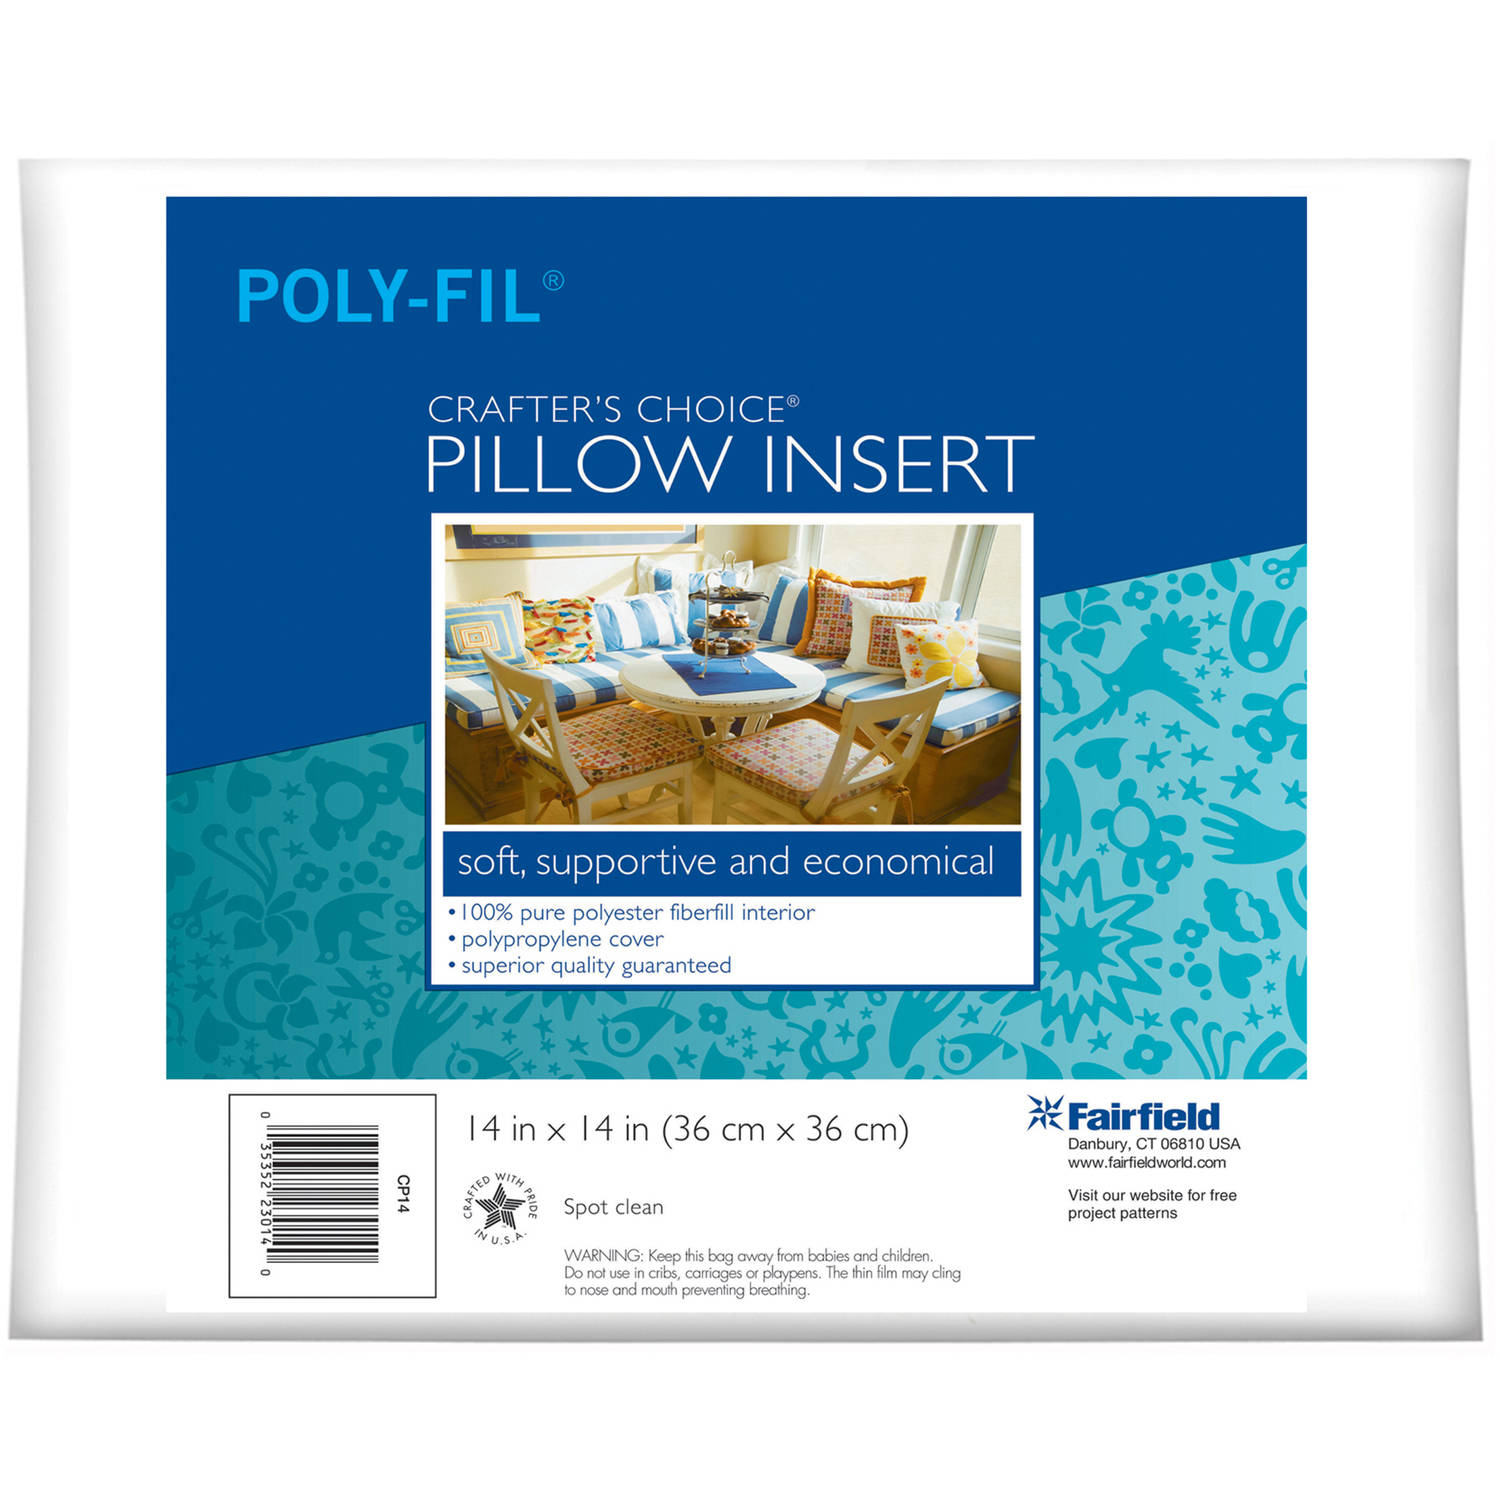 "Crafter's Choice Pillow Insert, 14"" x 14"" - Walmart.com"